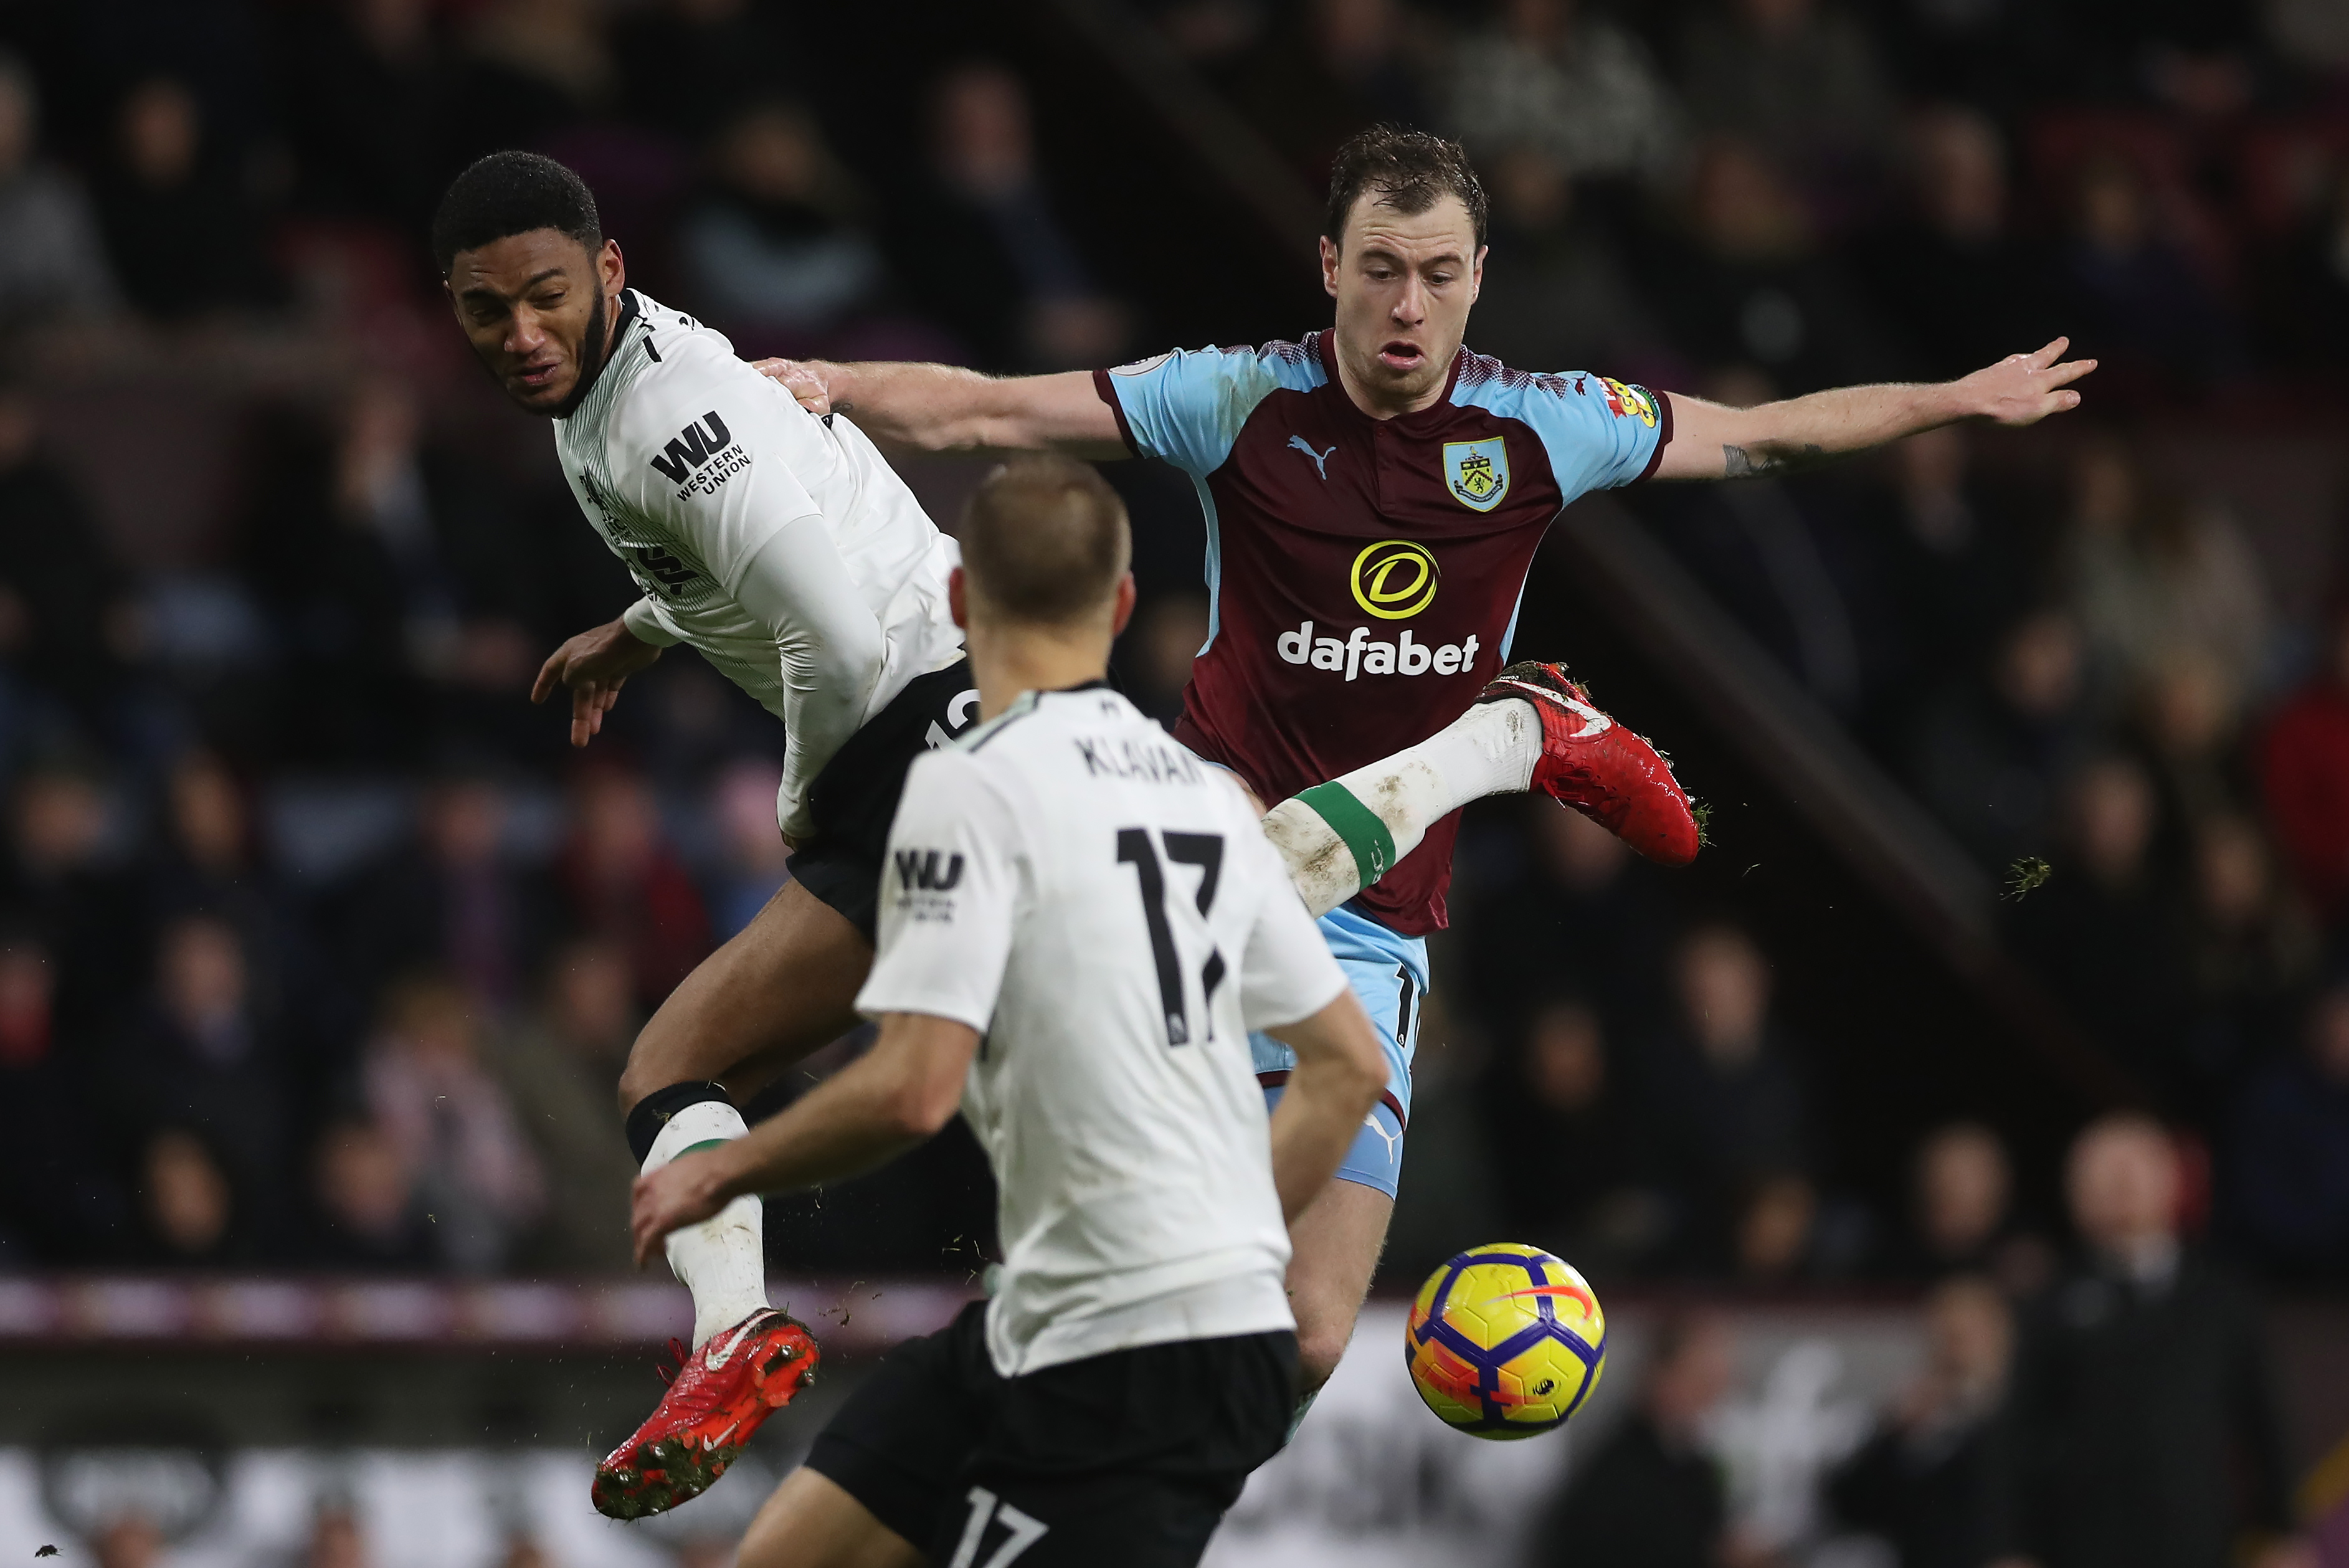 Liverpool vs Burnley live stream: How to watch online for free